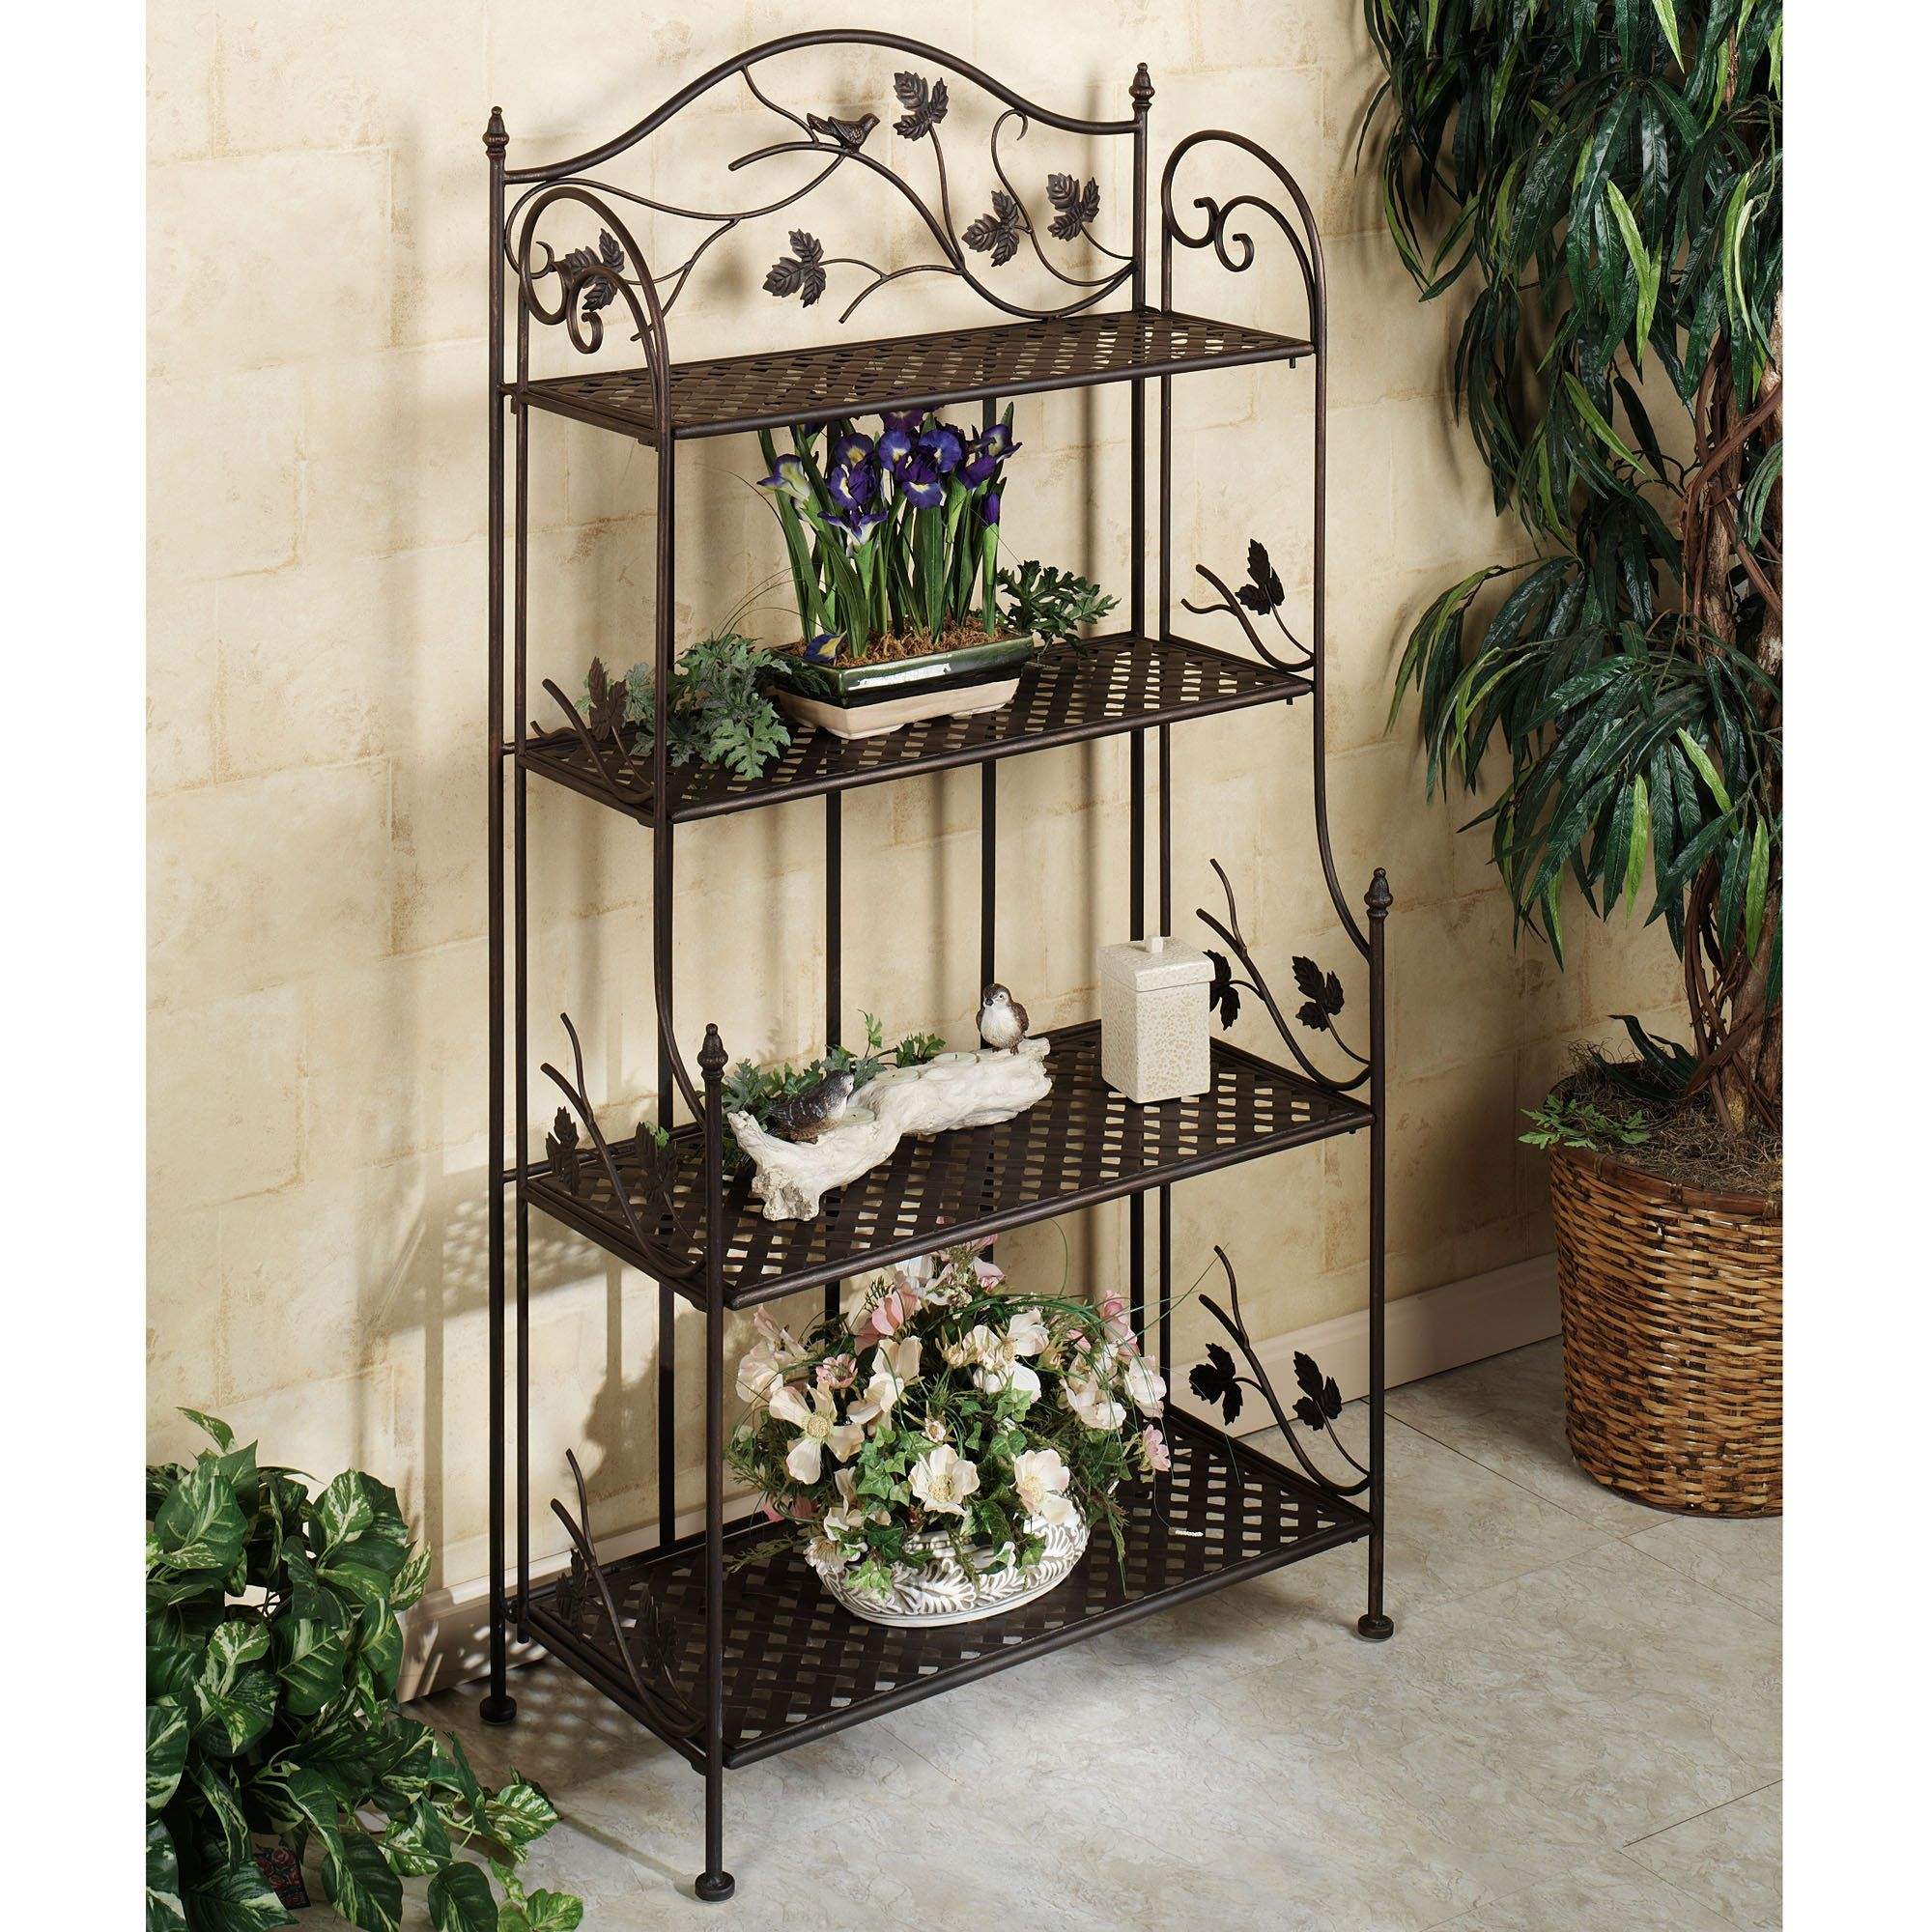 Songbird symphony indoor outdoor etagere indoor outdoor Plant stands for indoors